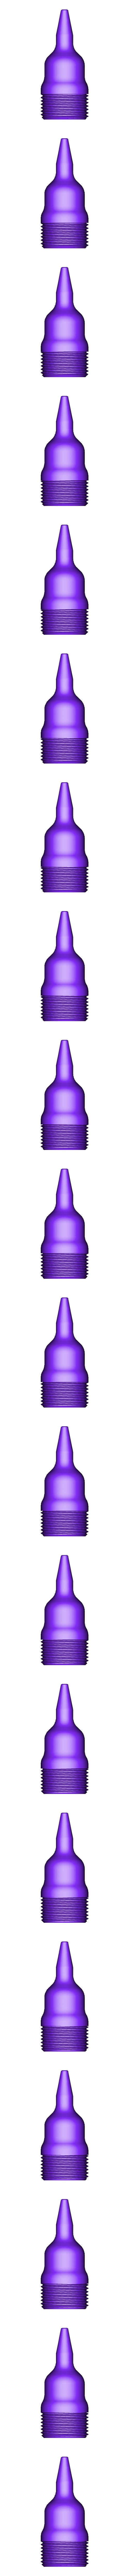 Nozzle2.stl Download free STL file Vase, squeeze bottle thingie and nozzles • 3D printable model, Thomllama